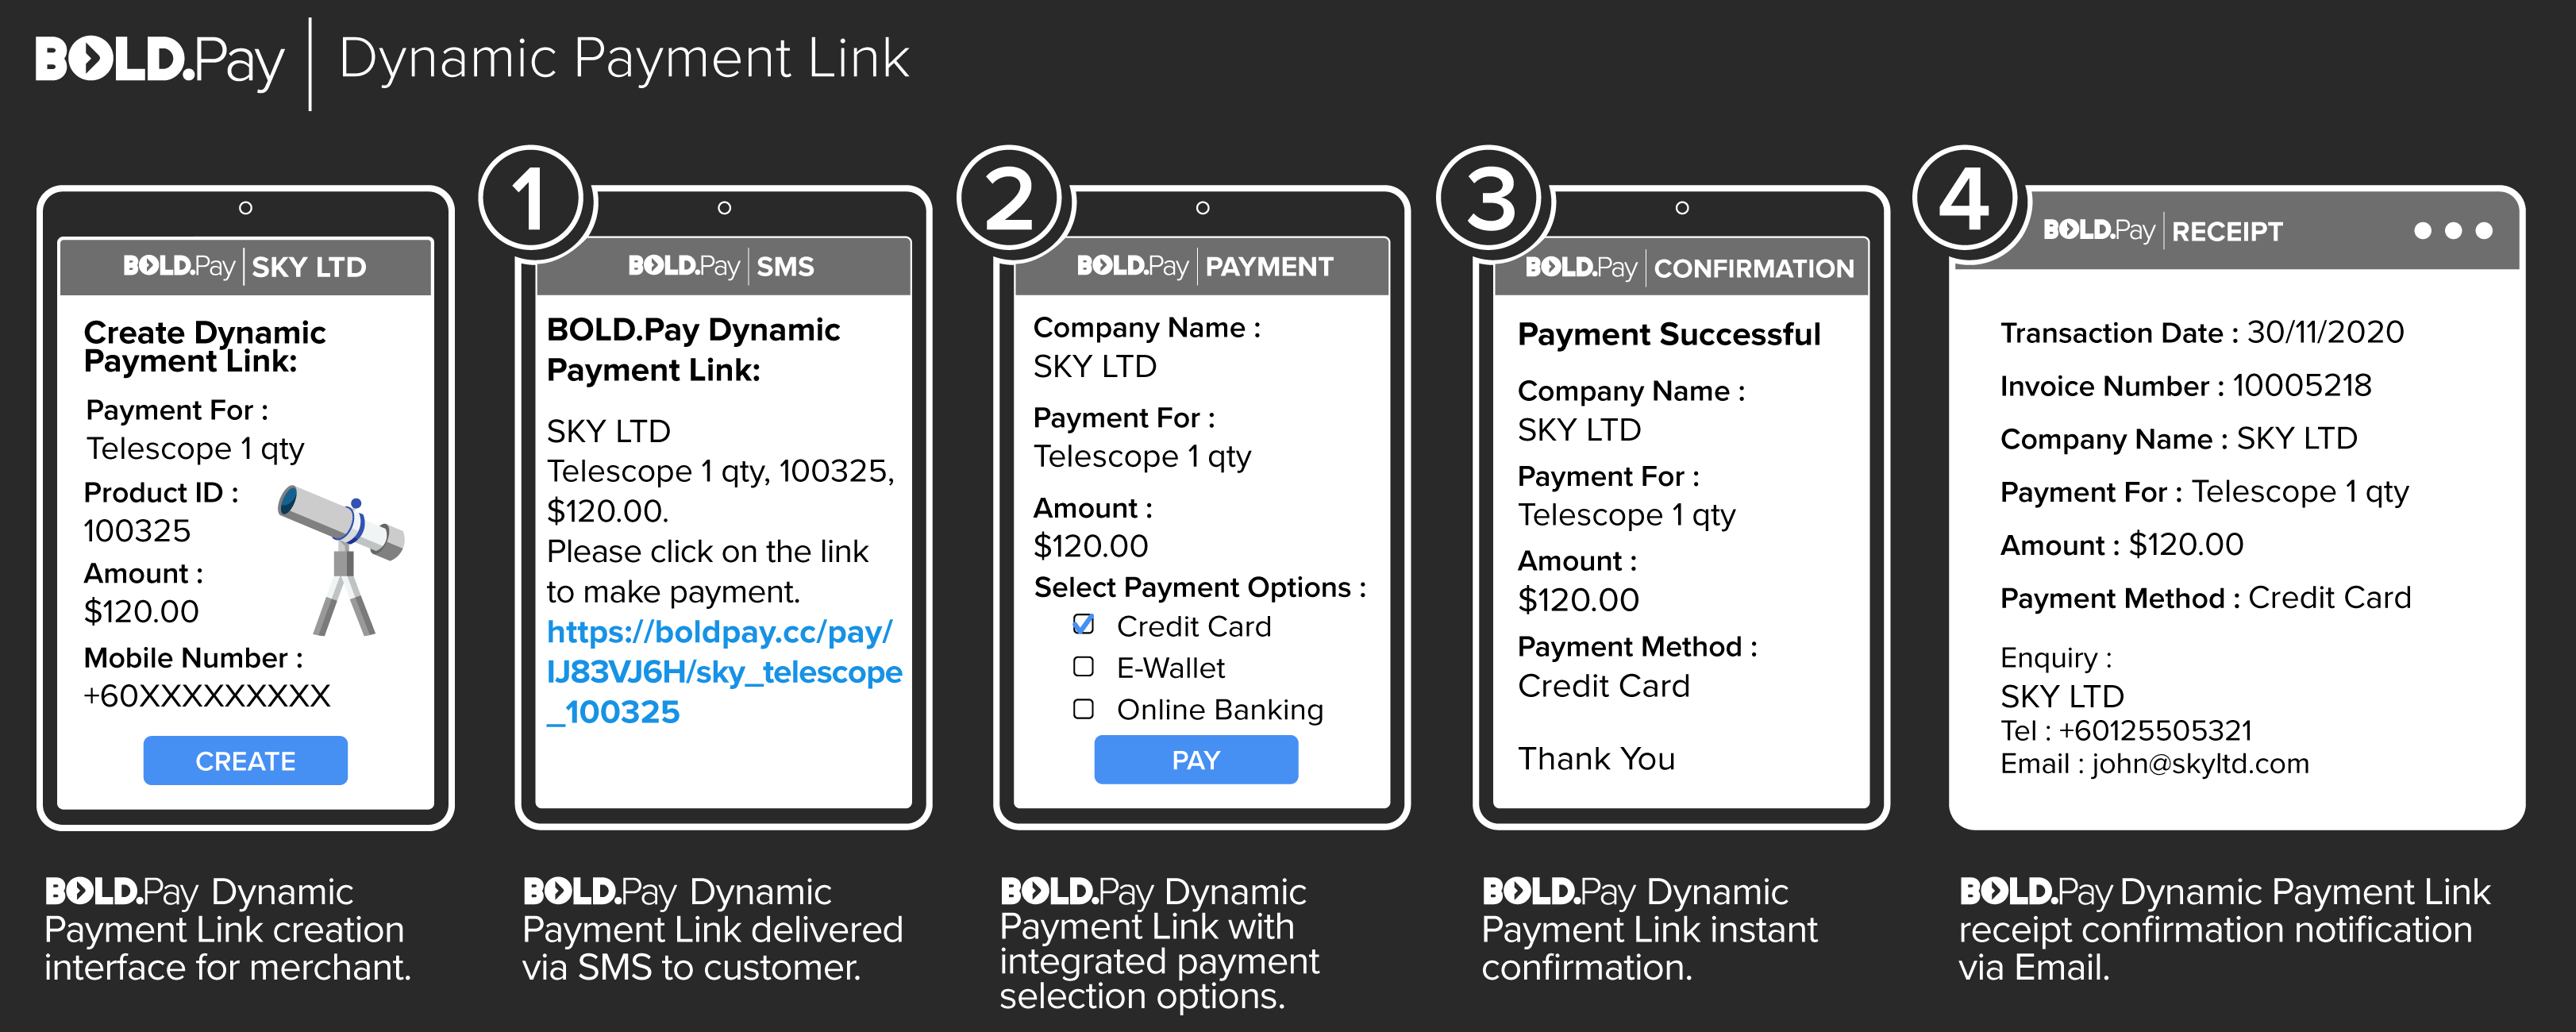 Bold.Pay Dynamic Payment Link